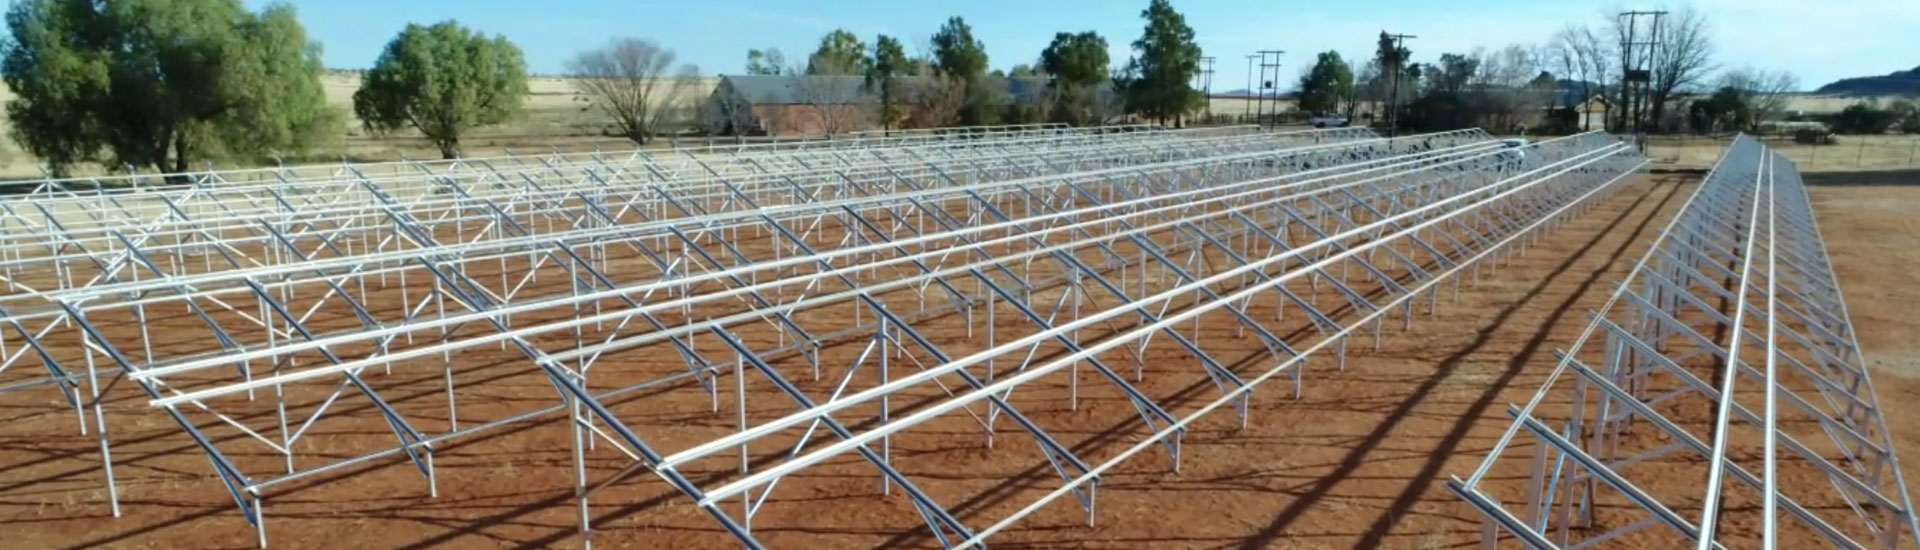 Eco Trades: Solar Power Systems for Commercial Farms (Project: Petrusburg)